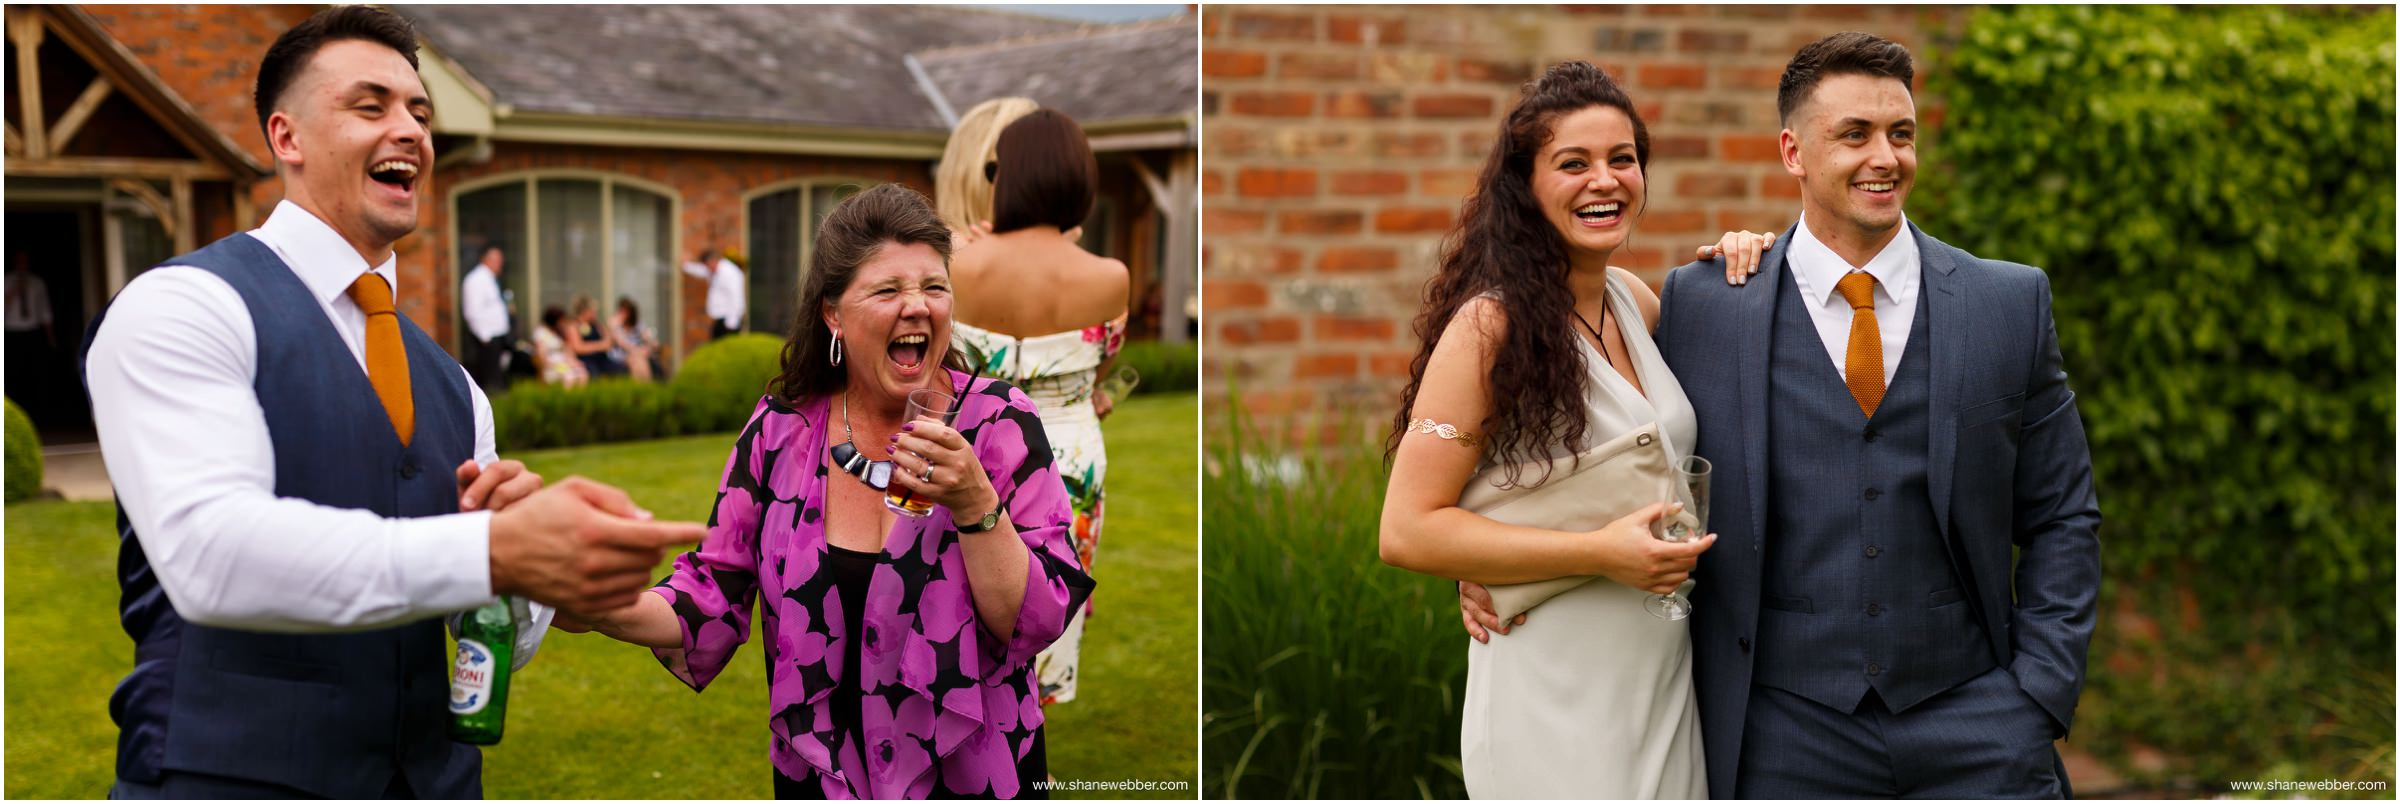 Natural wedding photos at Colshaw Hall